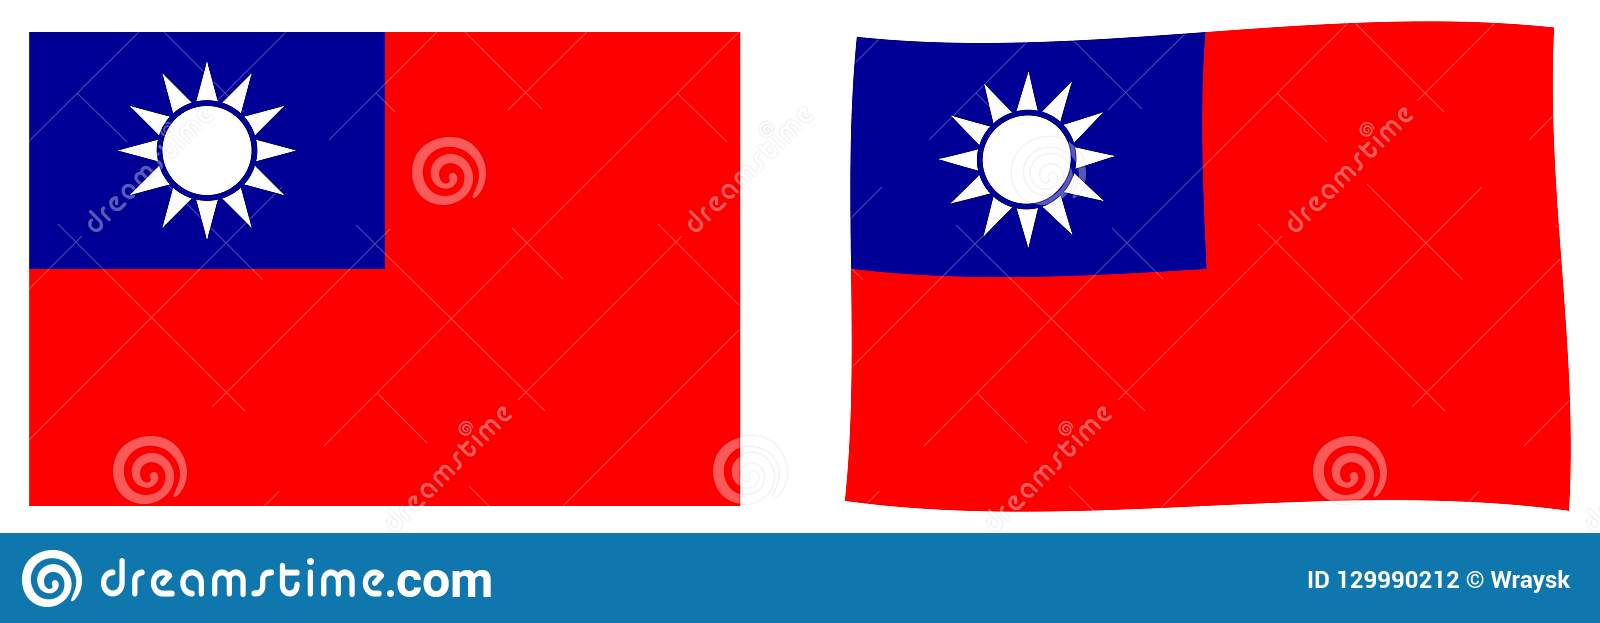 Taiwan Republic Of China Flag  Simple And Slightly Waving